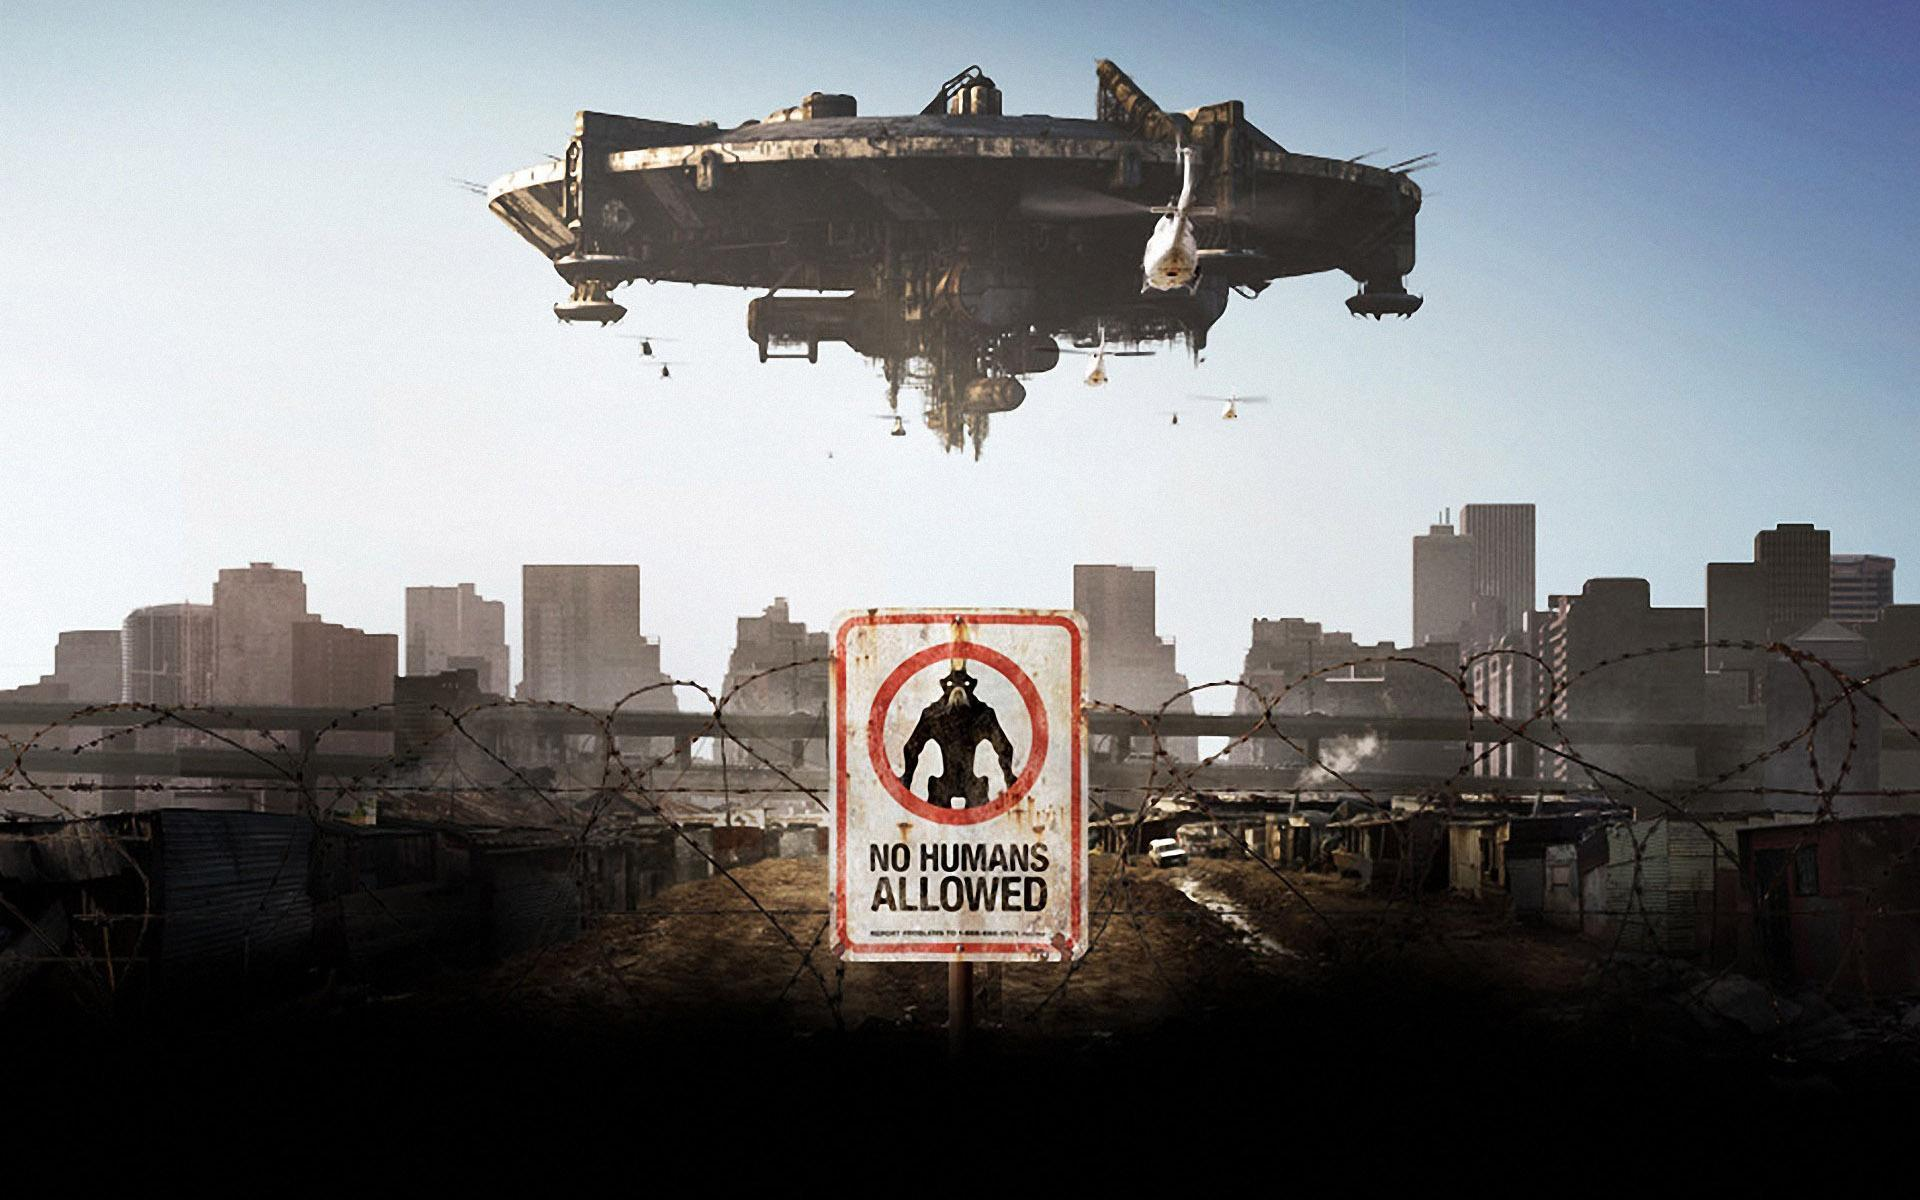 District 9 Wallpapers - Top Free District 9 Backgrounds - WallpaperAccess